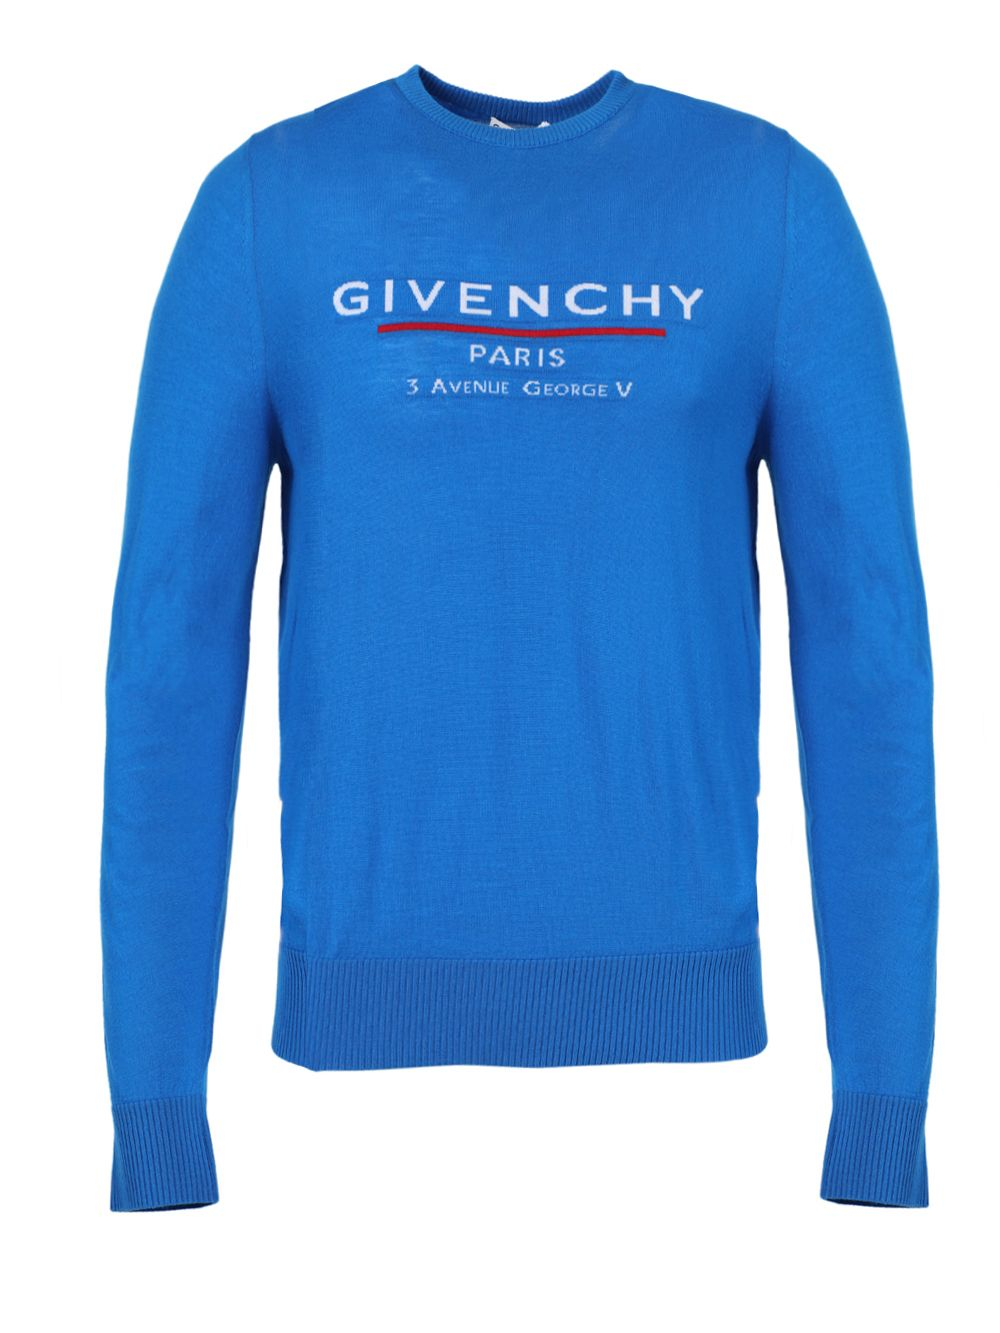 Givenchy OCEAN BLUE ATELIER CREW-NECK SWEATER